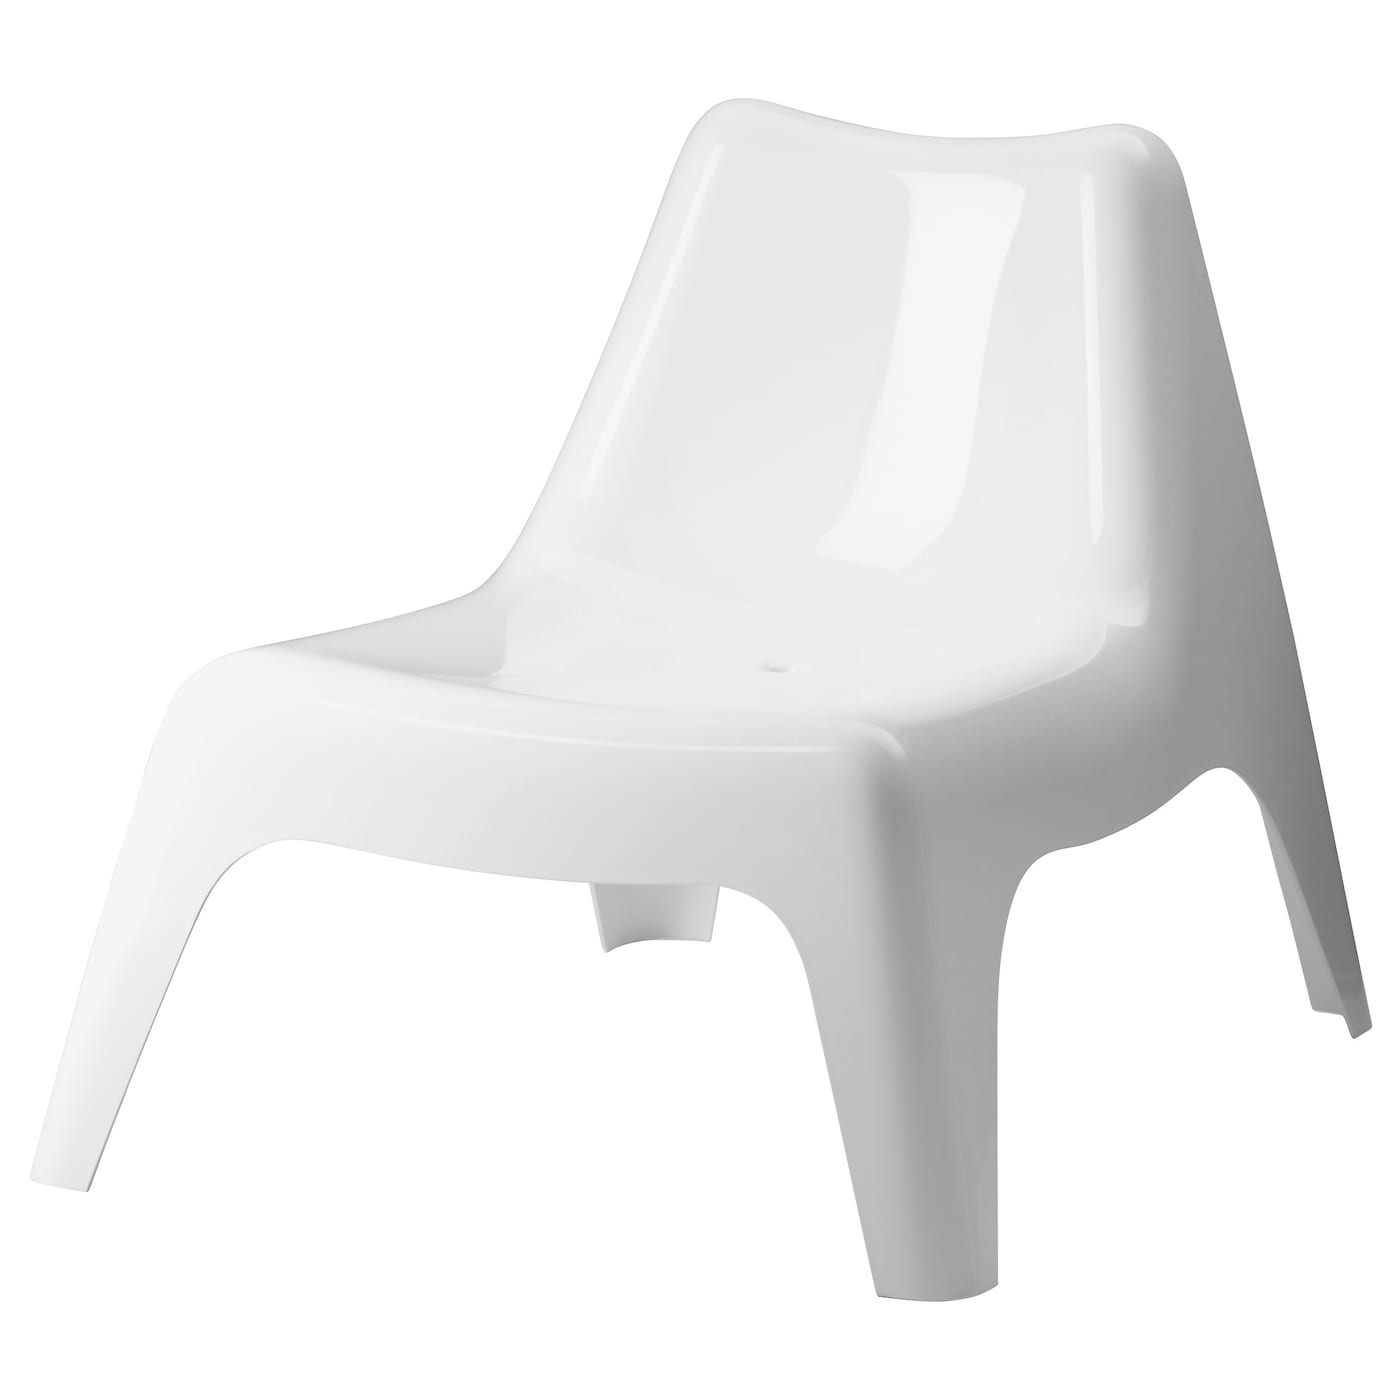 Outdoor garden seating ikea ireland dublin - Tabouret enfant ikea ...